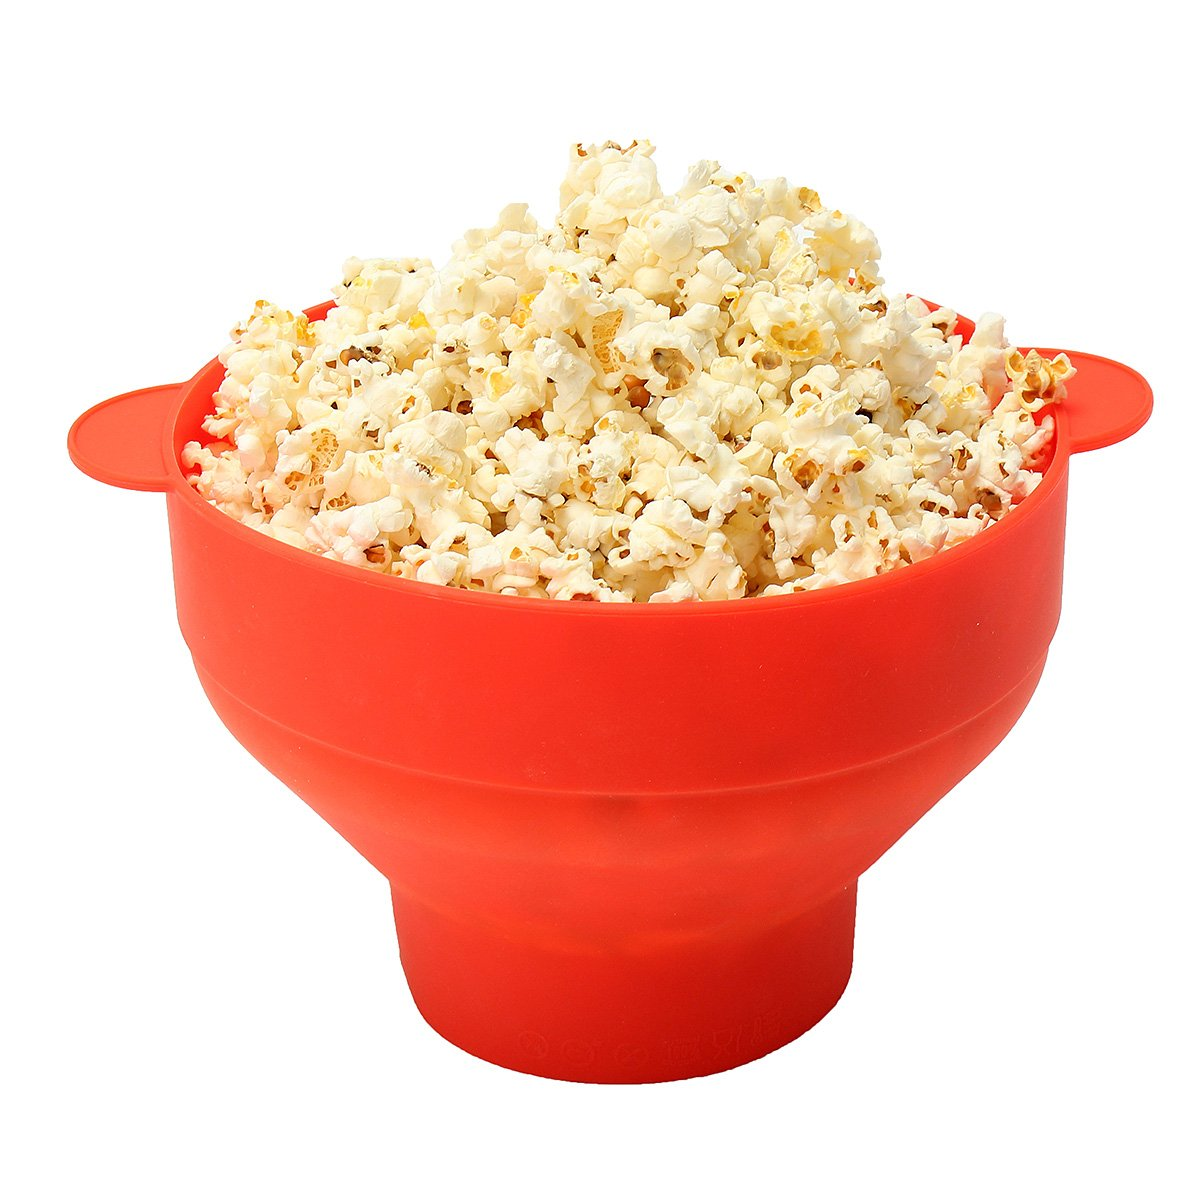 Popcorn Maker TAPCET Microwave Popcorn Maker Silicone Popcorn Popper Collapsible Popcorn Bowl with Convenient Handle and Anti-Splash Lid FDA Certified Red